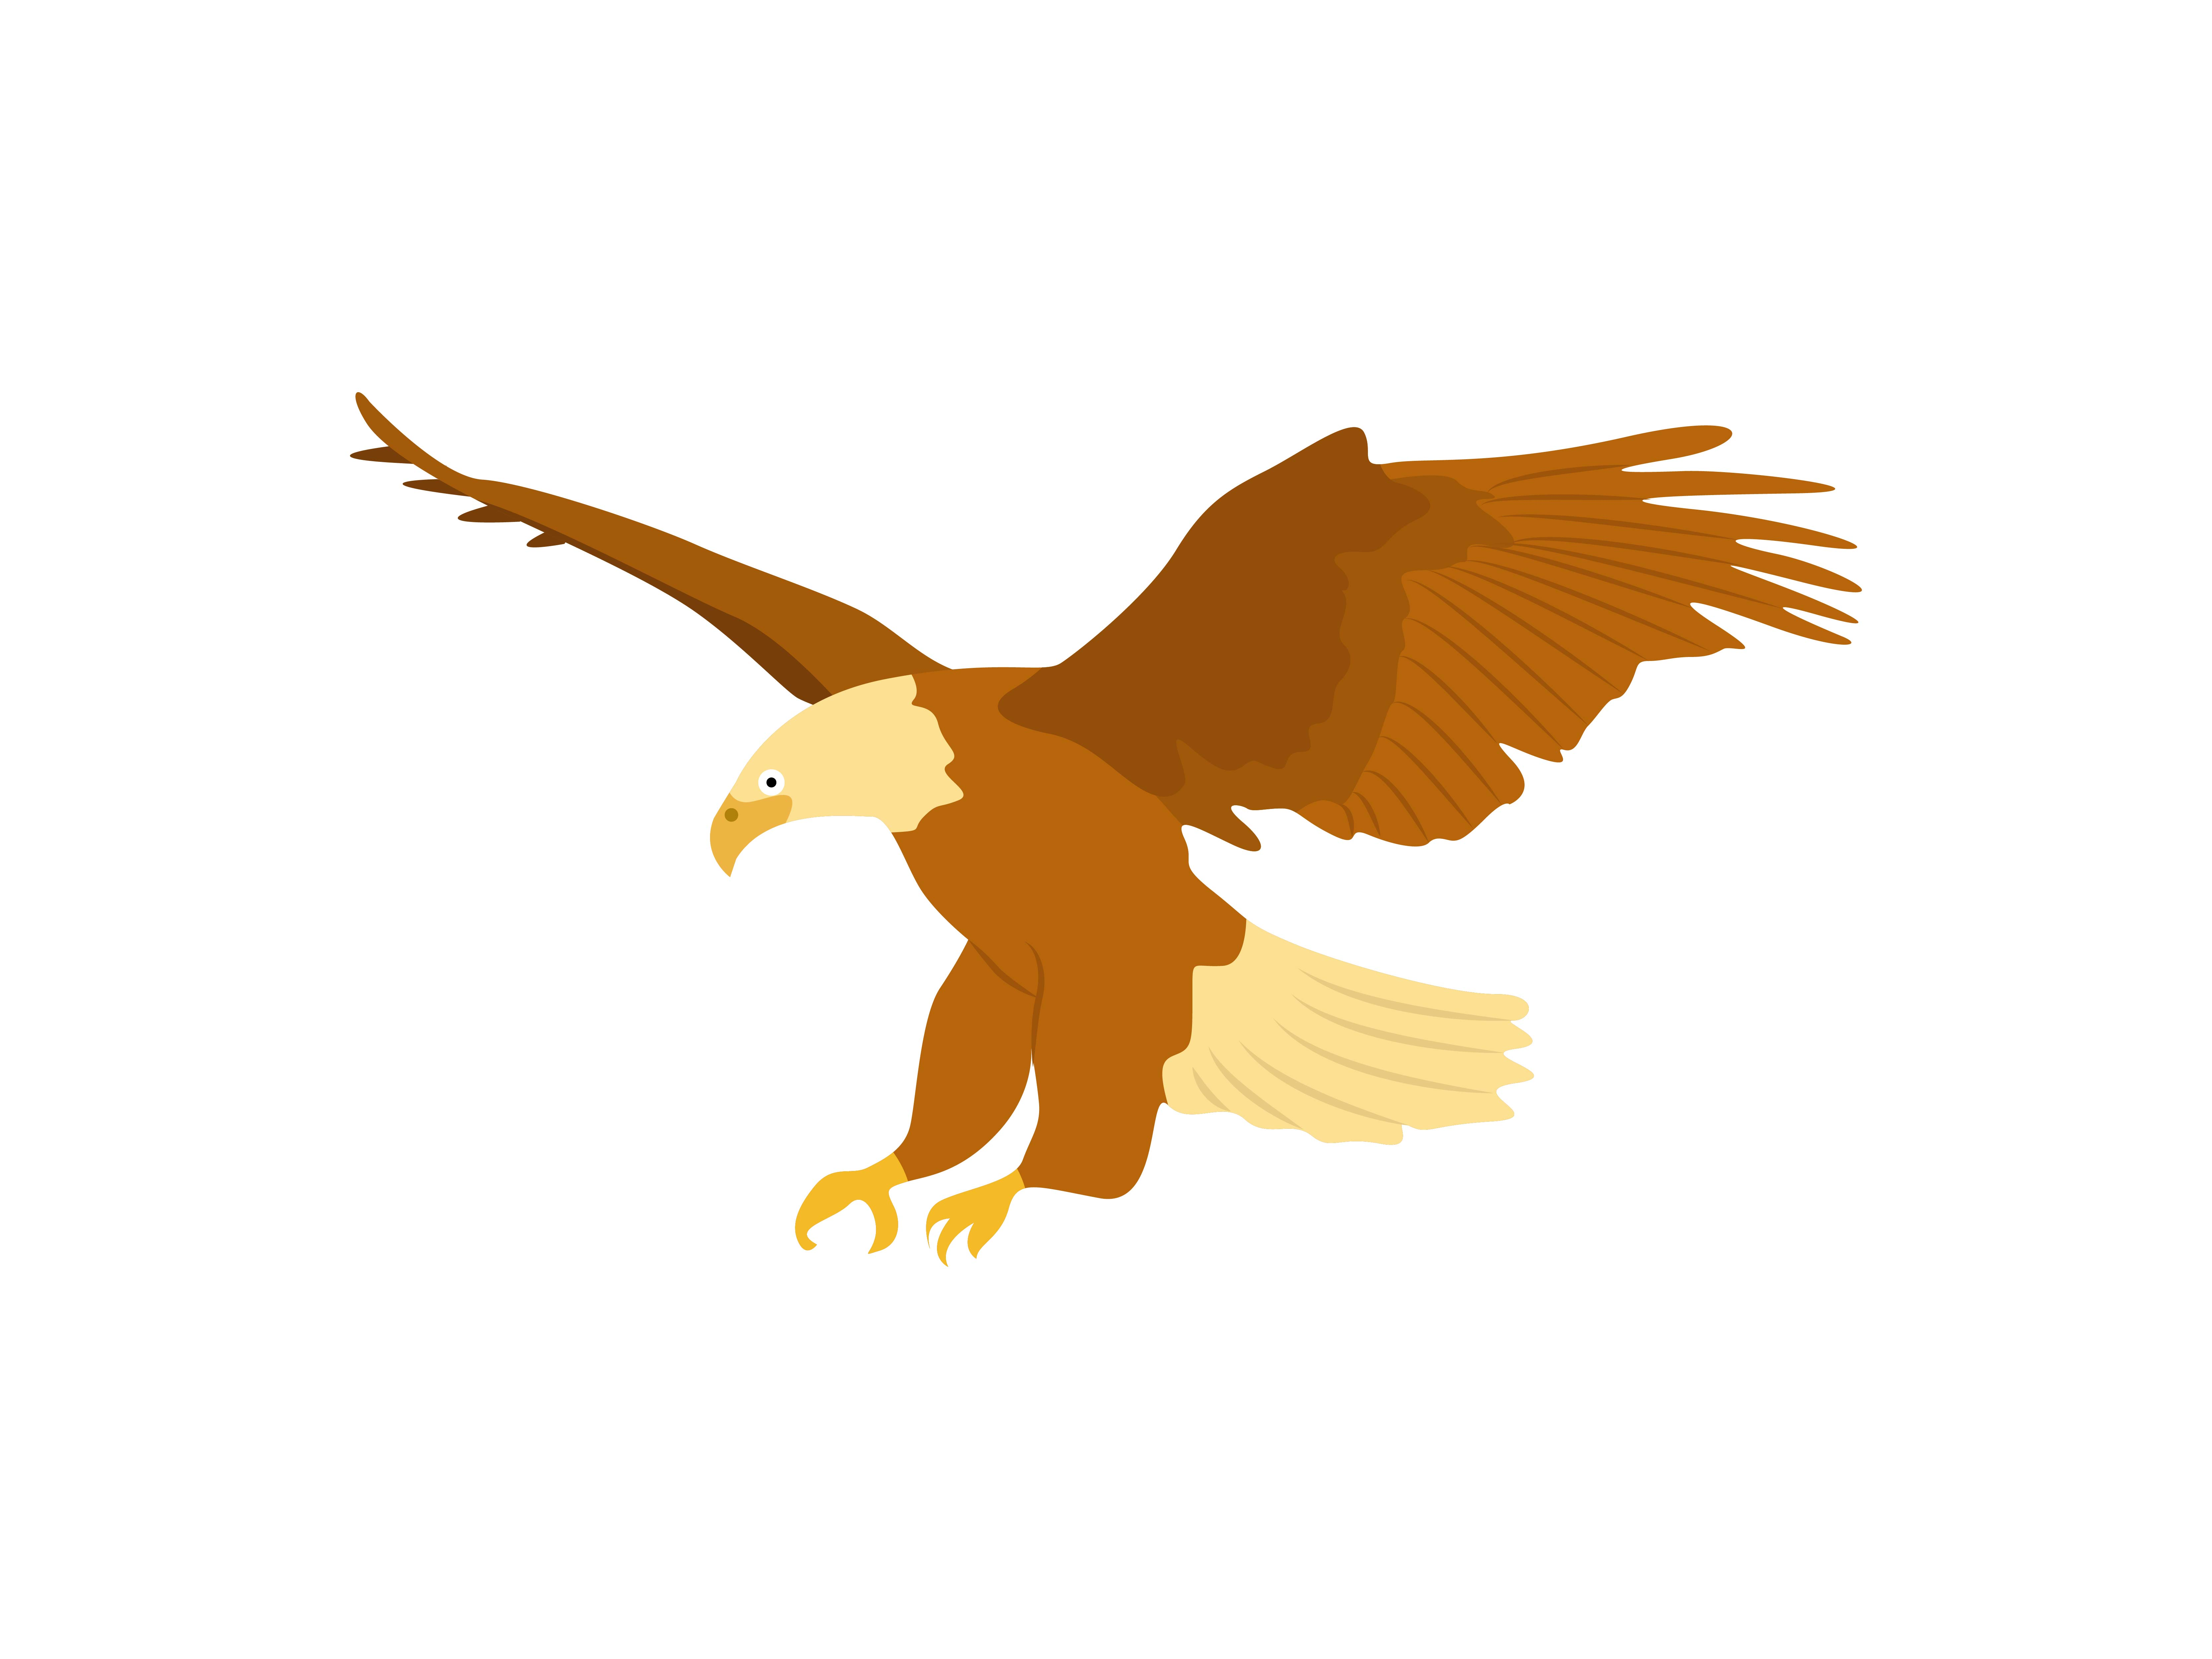 Download Free Eagle Landing Bird Animal Graphic By Archshape Creative Fabrica for Cricut Explore, Silhouette and other cutting machines.